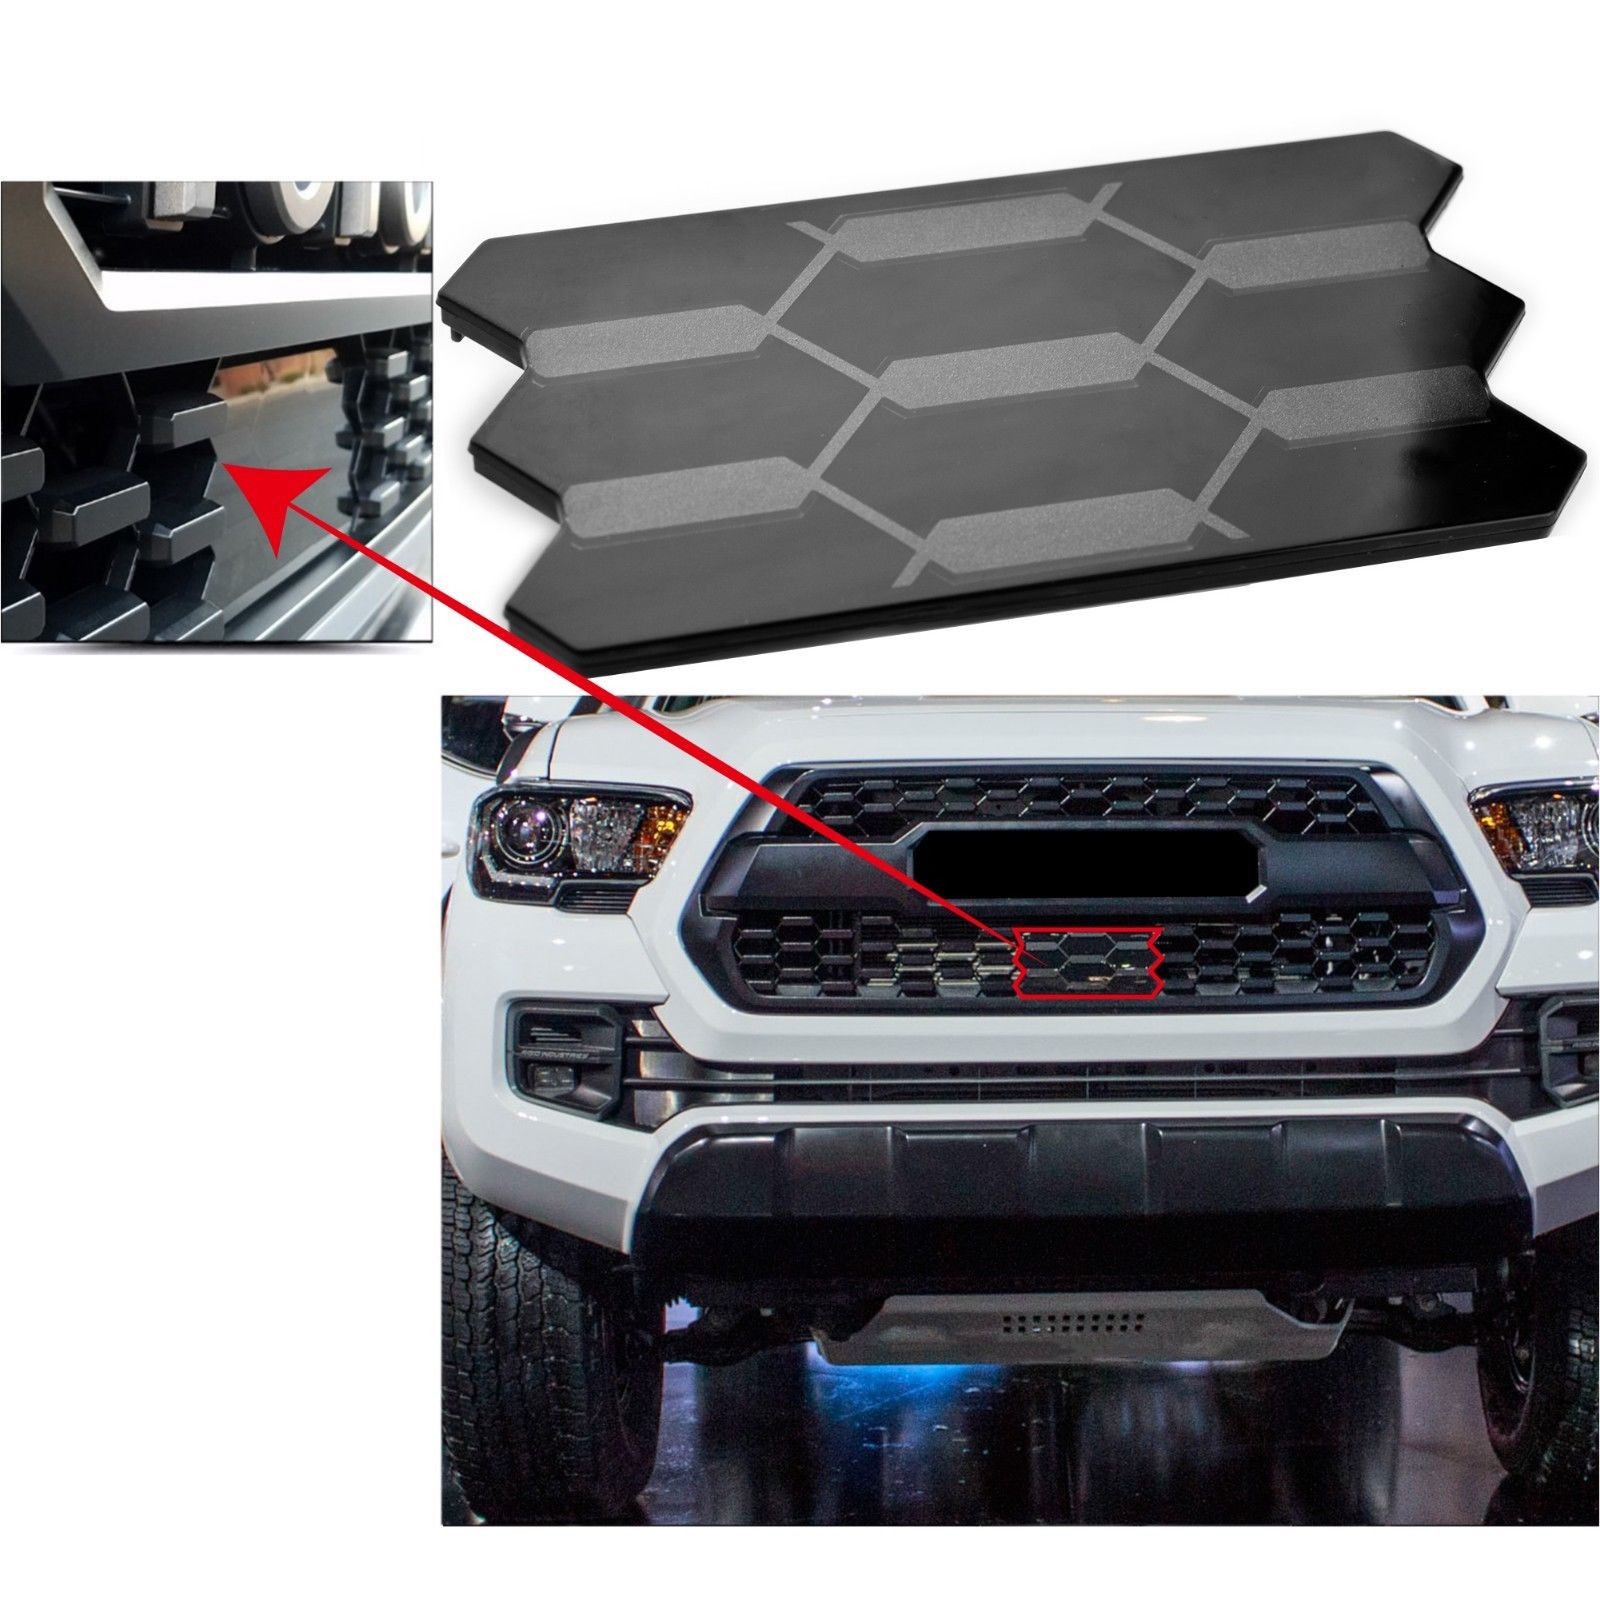 For Toyota Front Grille Garnish Radiator Sensor Cover for Tacoma 53141 35060 Car Accessories